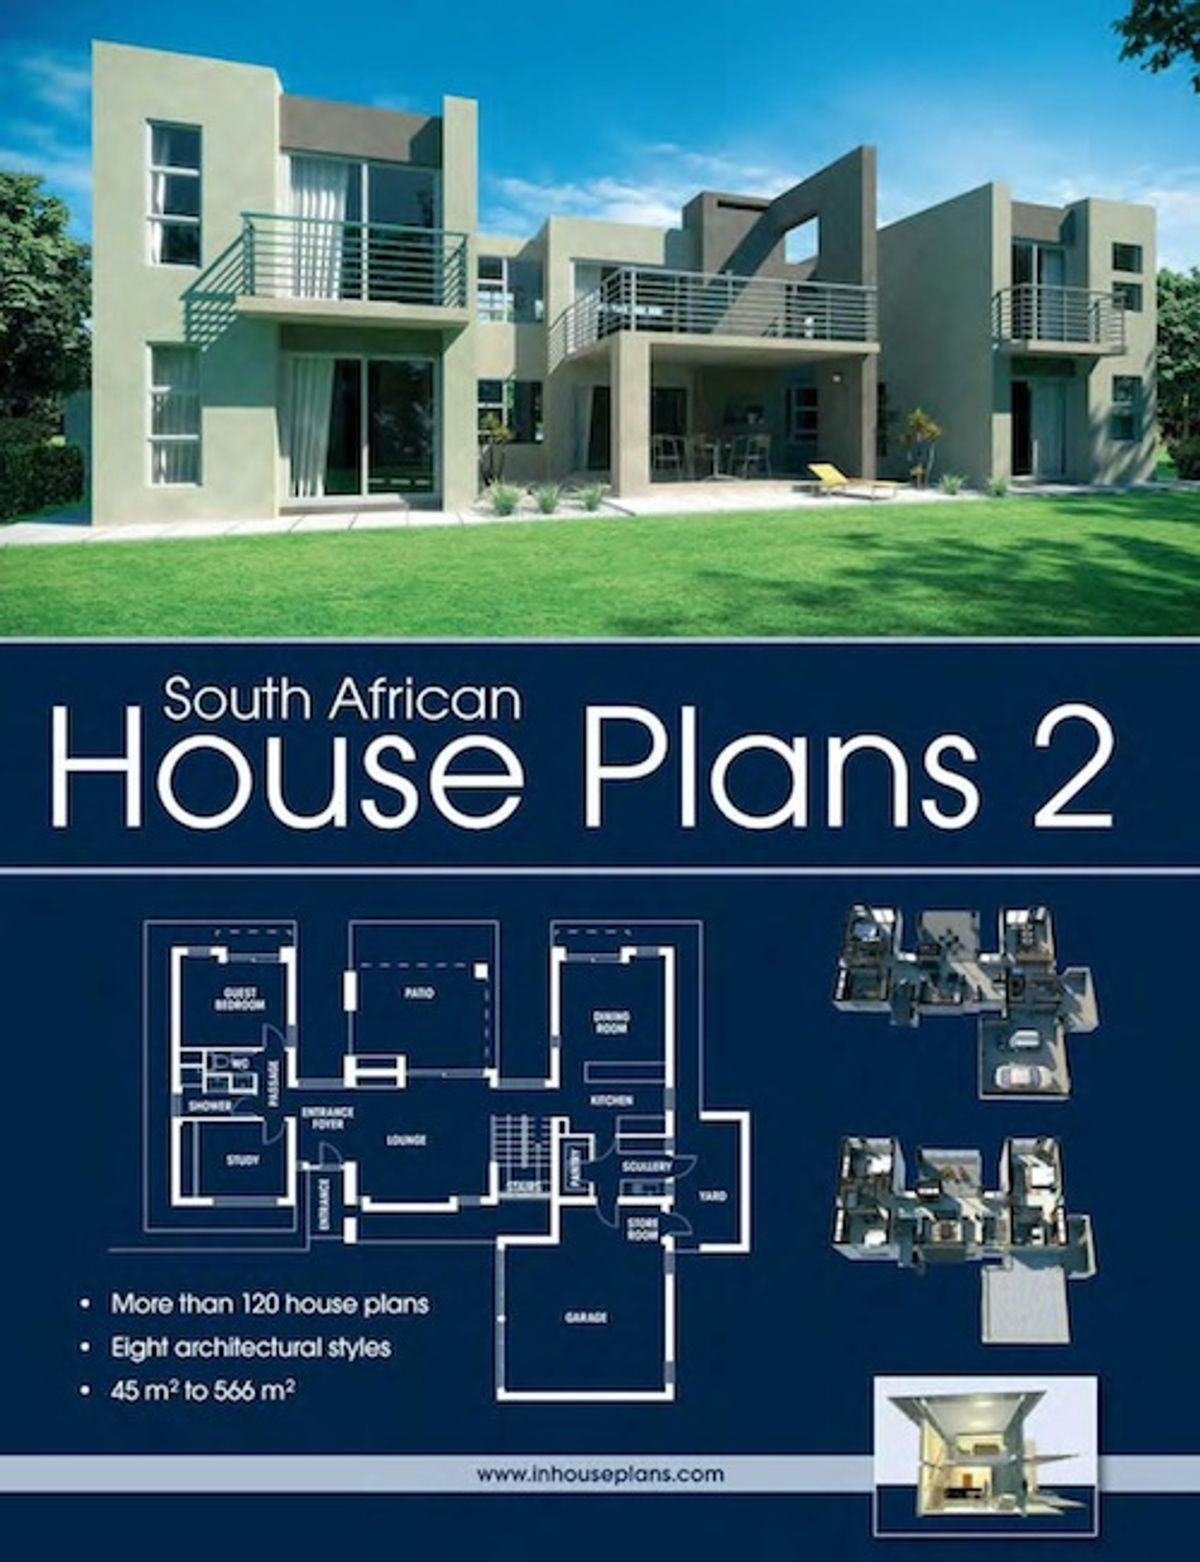 south african house plans 2 1